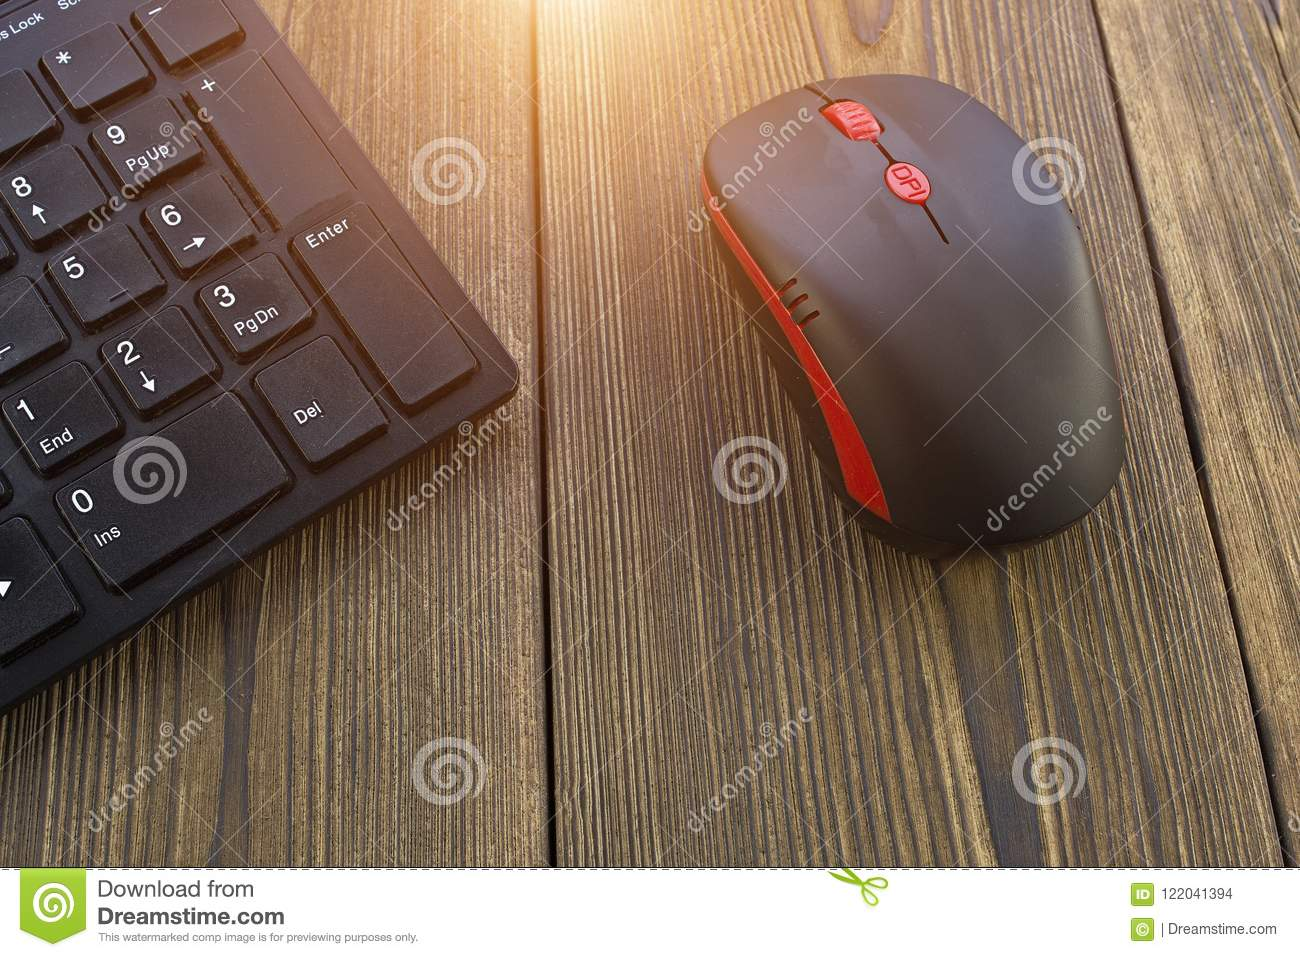 Computer mouse and keyboard on a wooden background, sun, close-up, keyboard